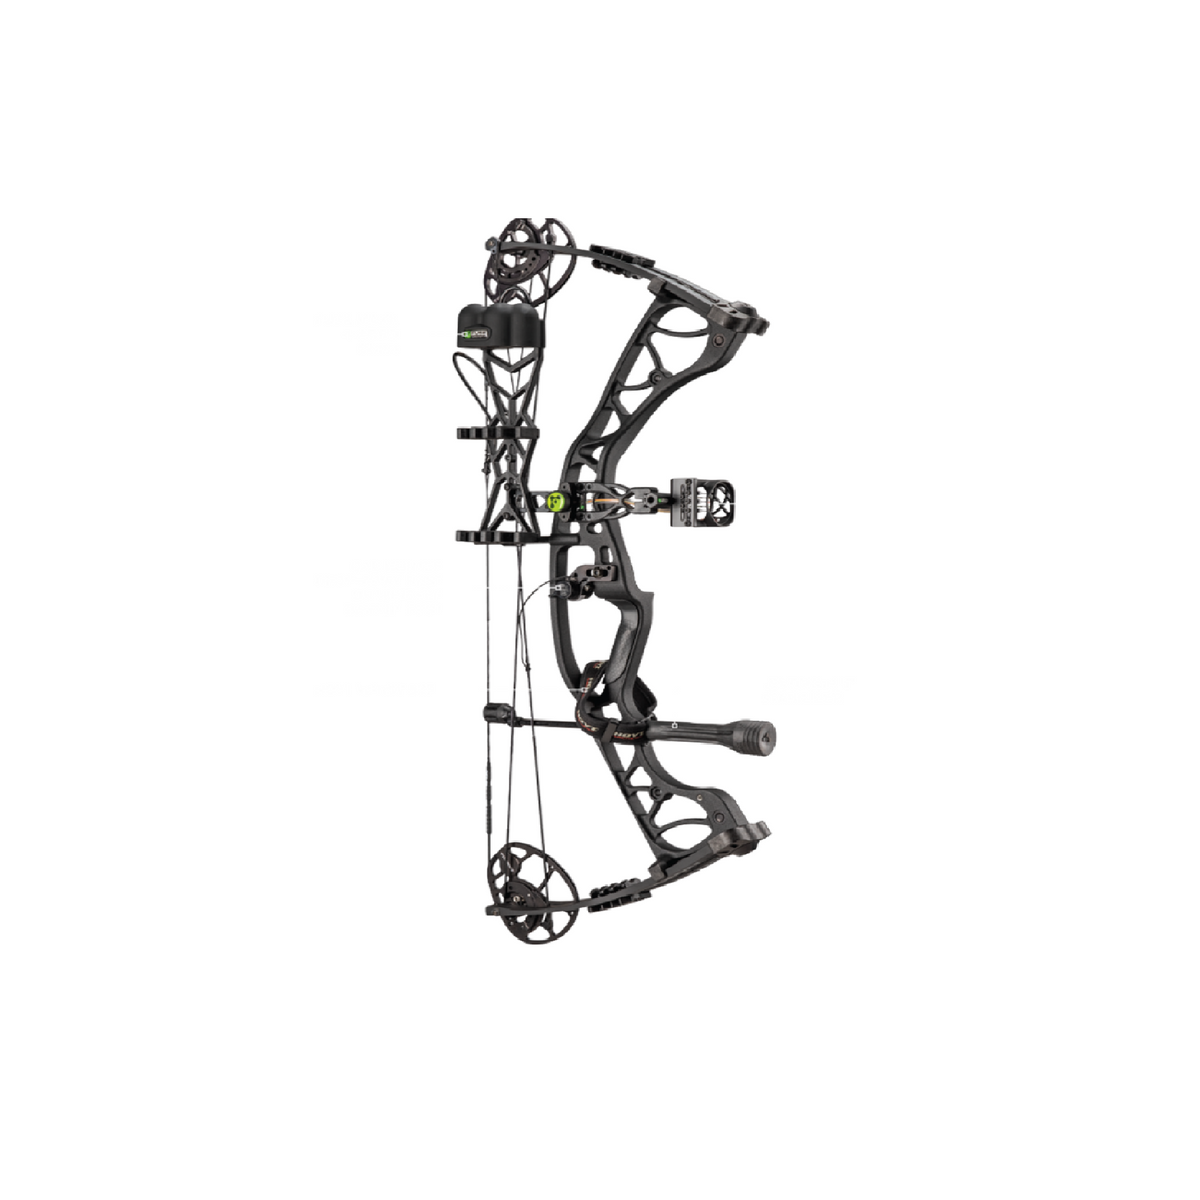 Hoyt Torrex Compound Package In Stock